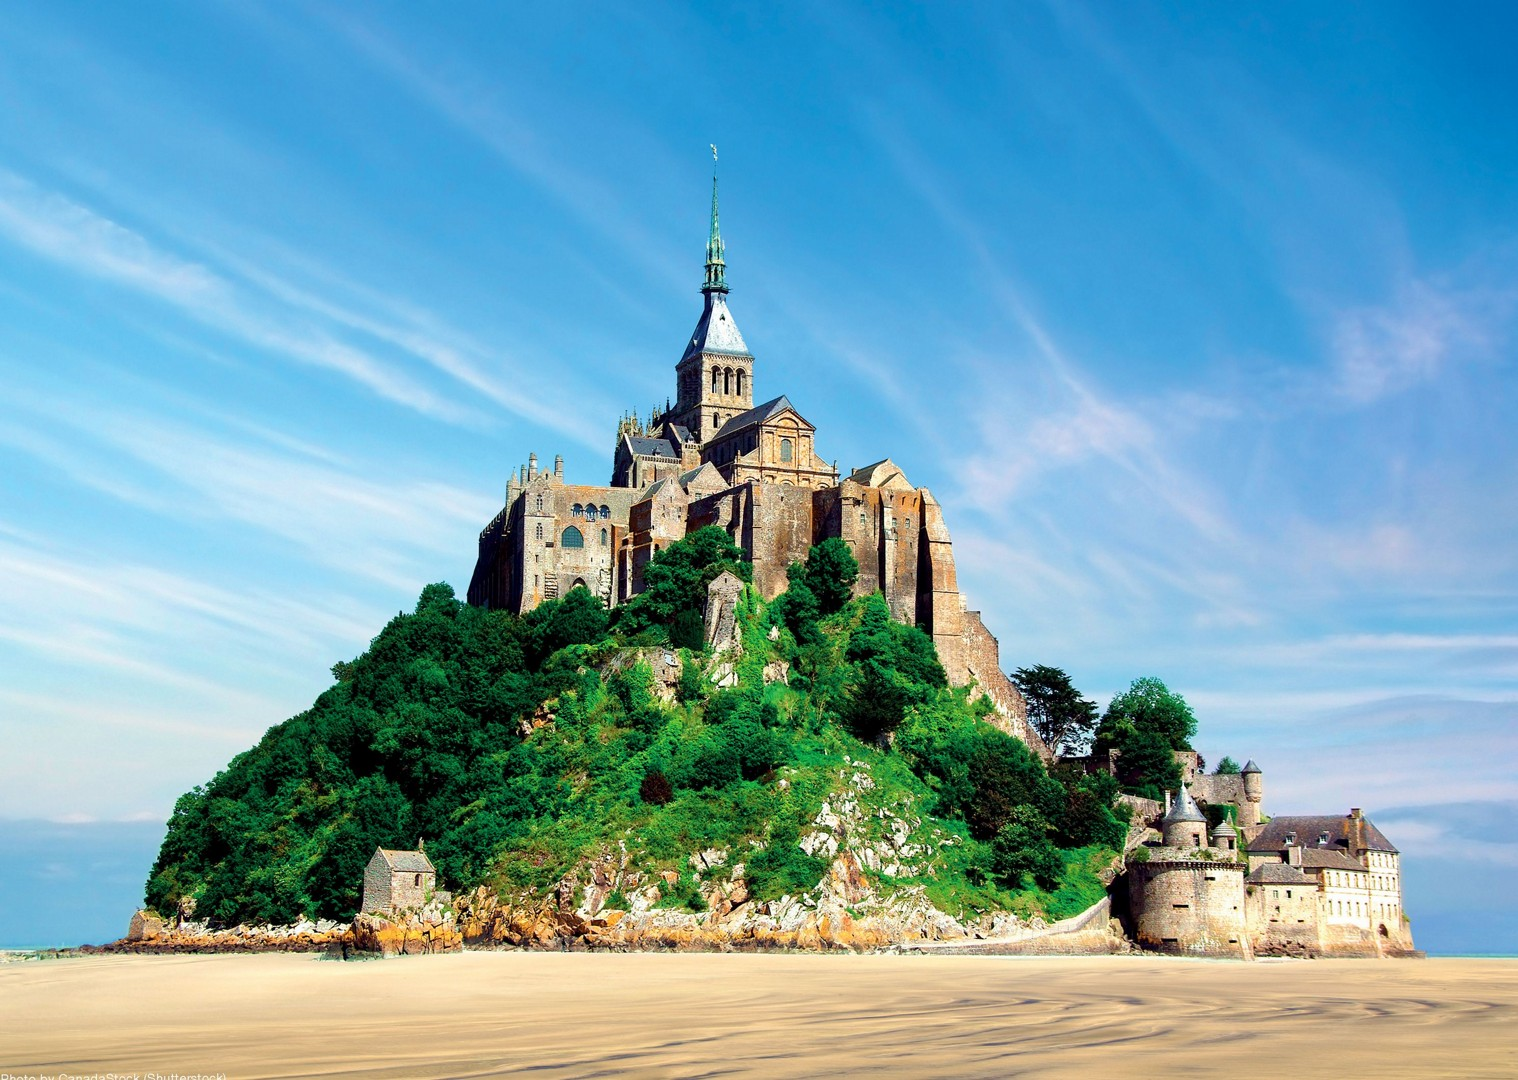 visit-mont-saint-michel-with-saddle-skedaddle-leisure-cycling-tours.jpg - France - Versailles to Mont Saint Michel - Self-Guided Leisure Cycling Holiday - Leisure Cycling